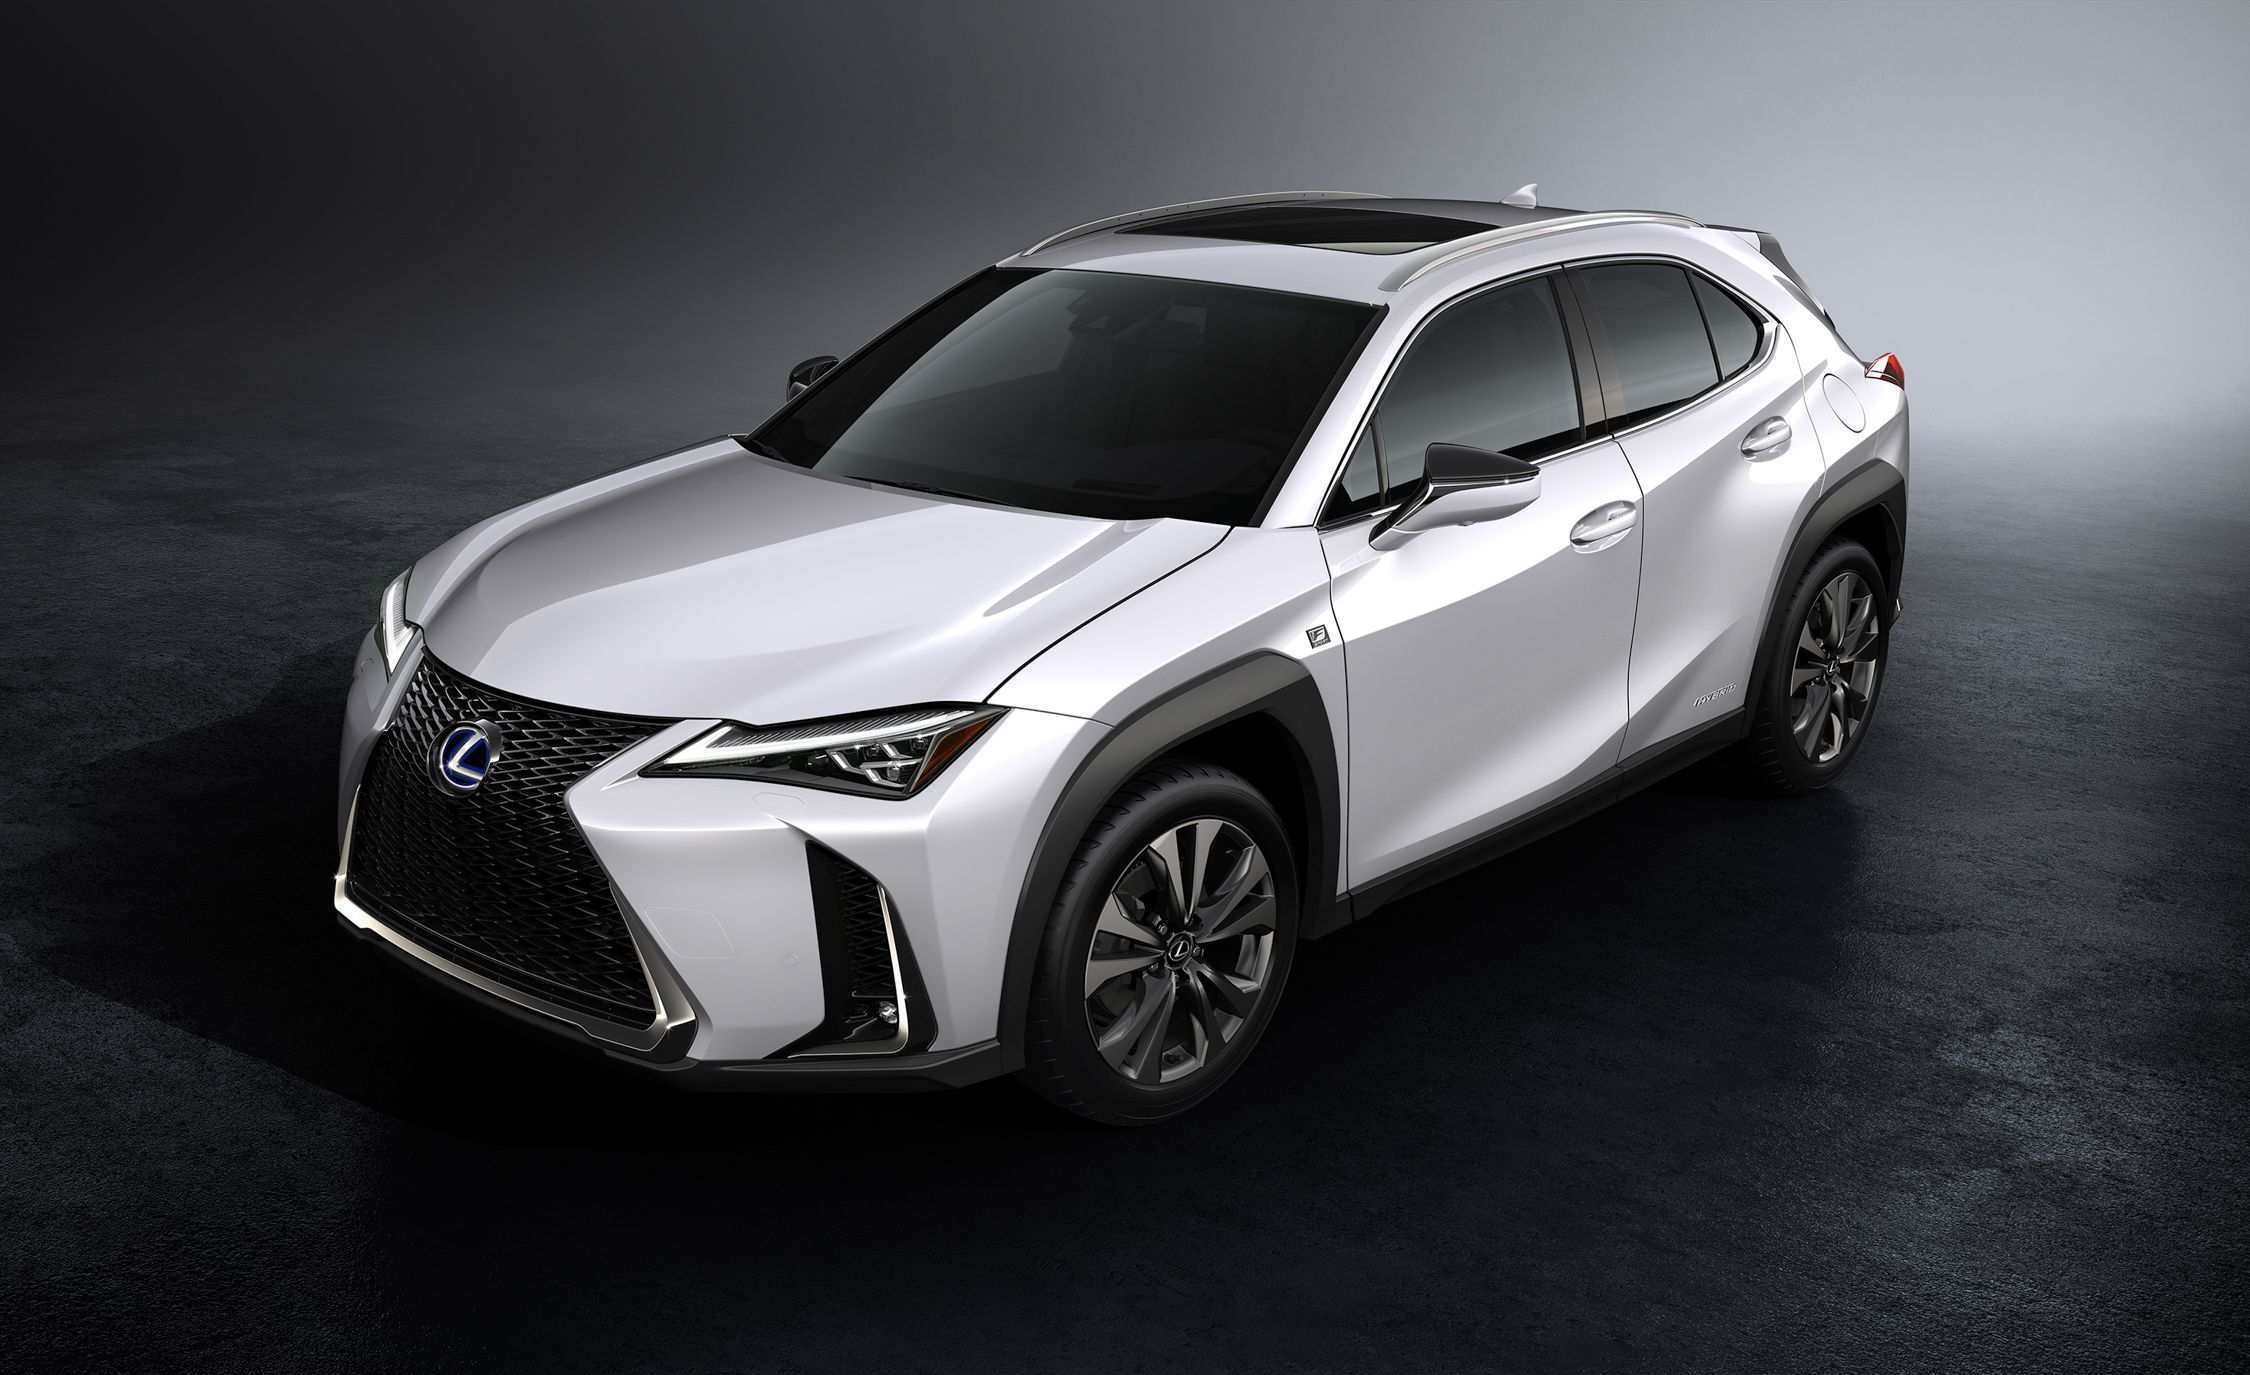 48 Concept of Lexus 2020 Ux Exterior Date Spy Shoot by Lexus 2020 Ux Exterior Date